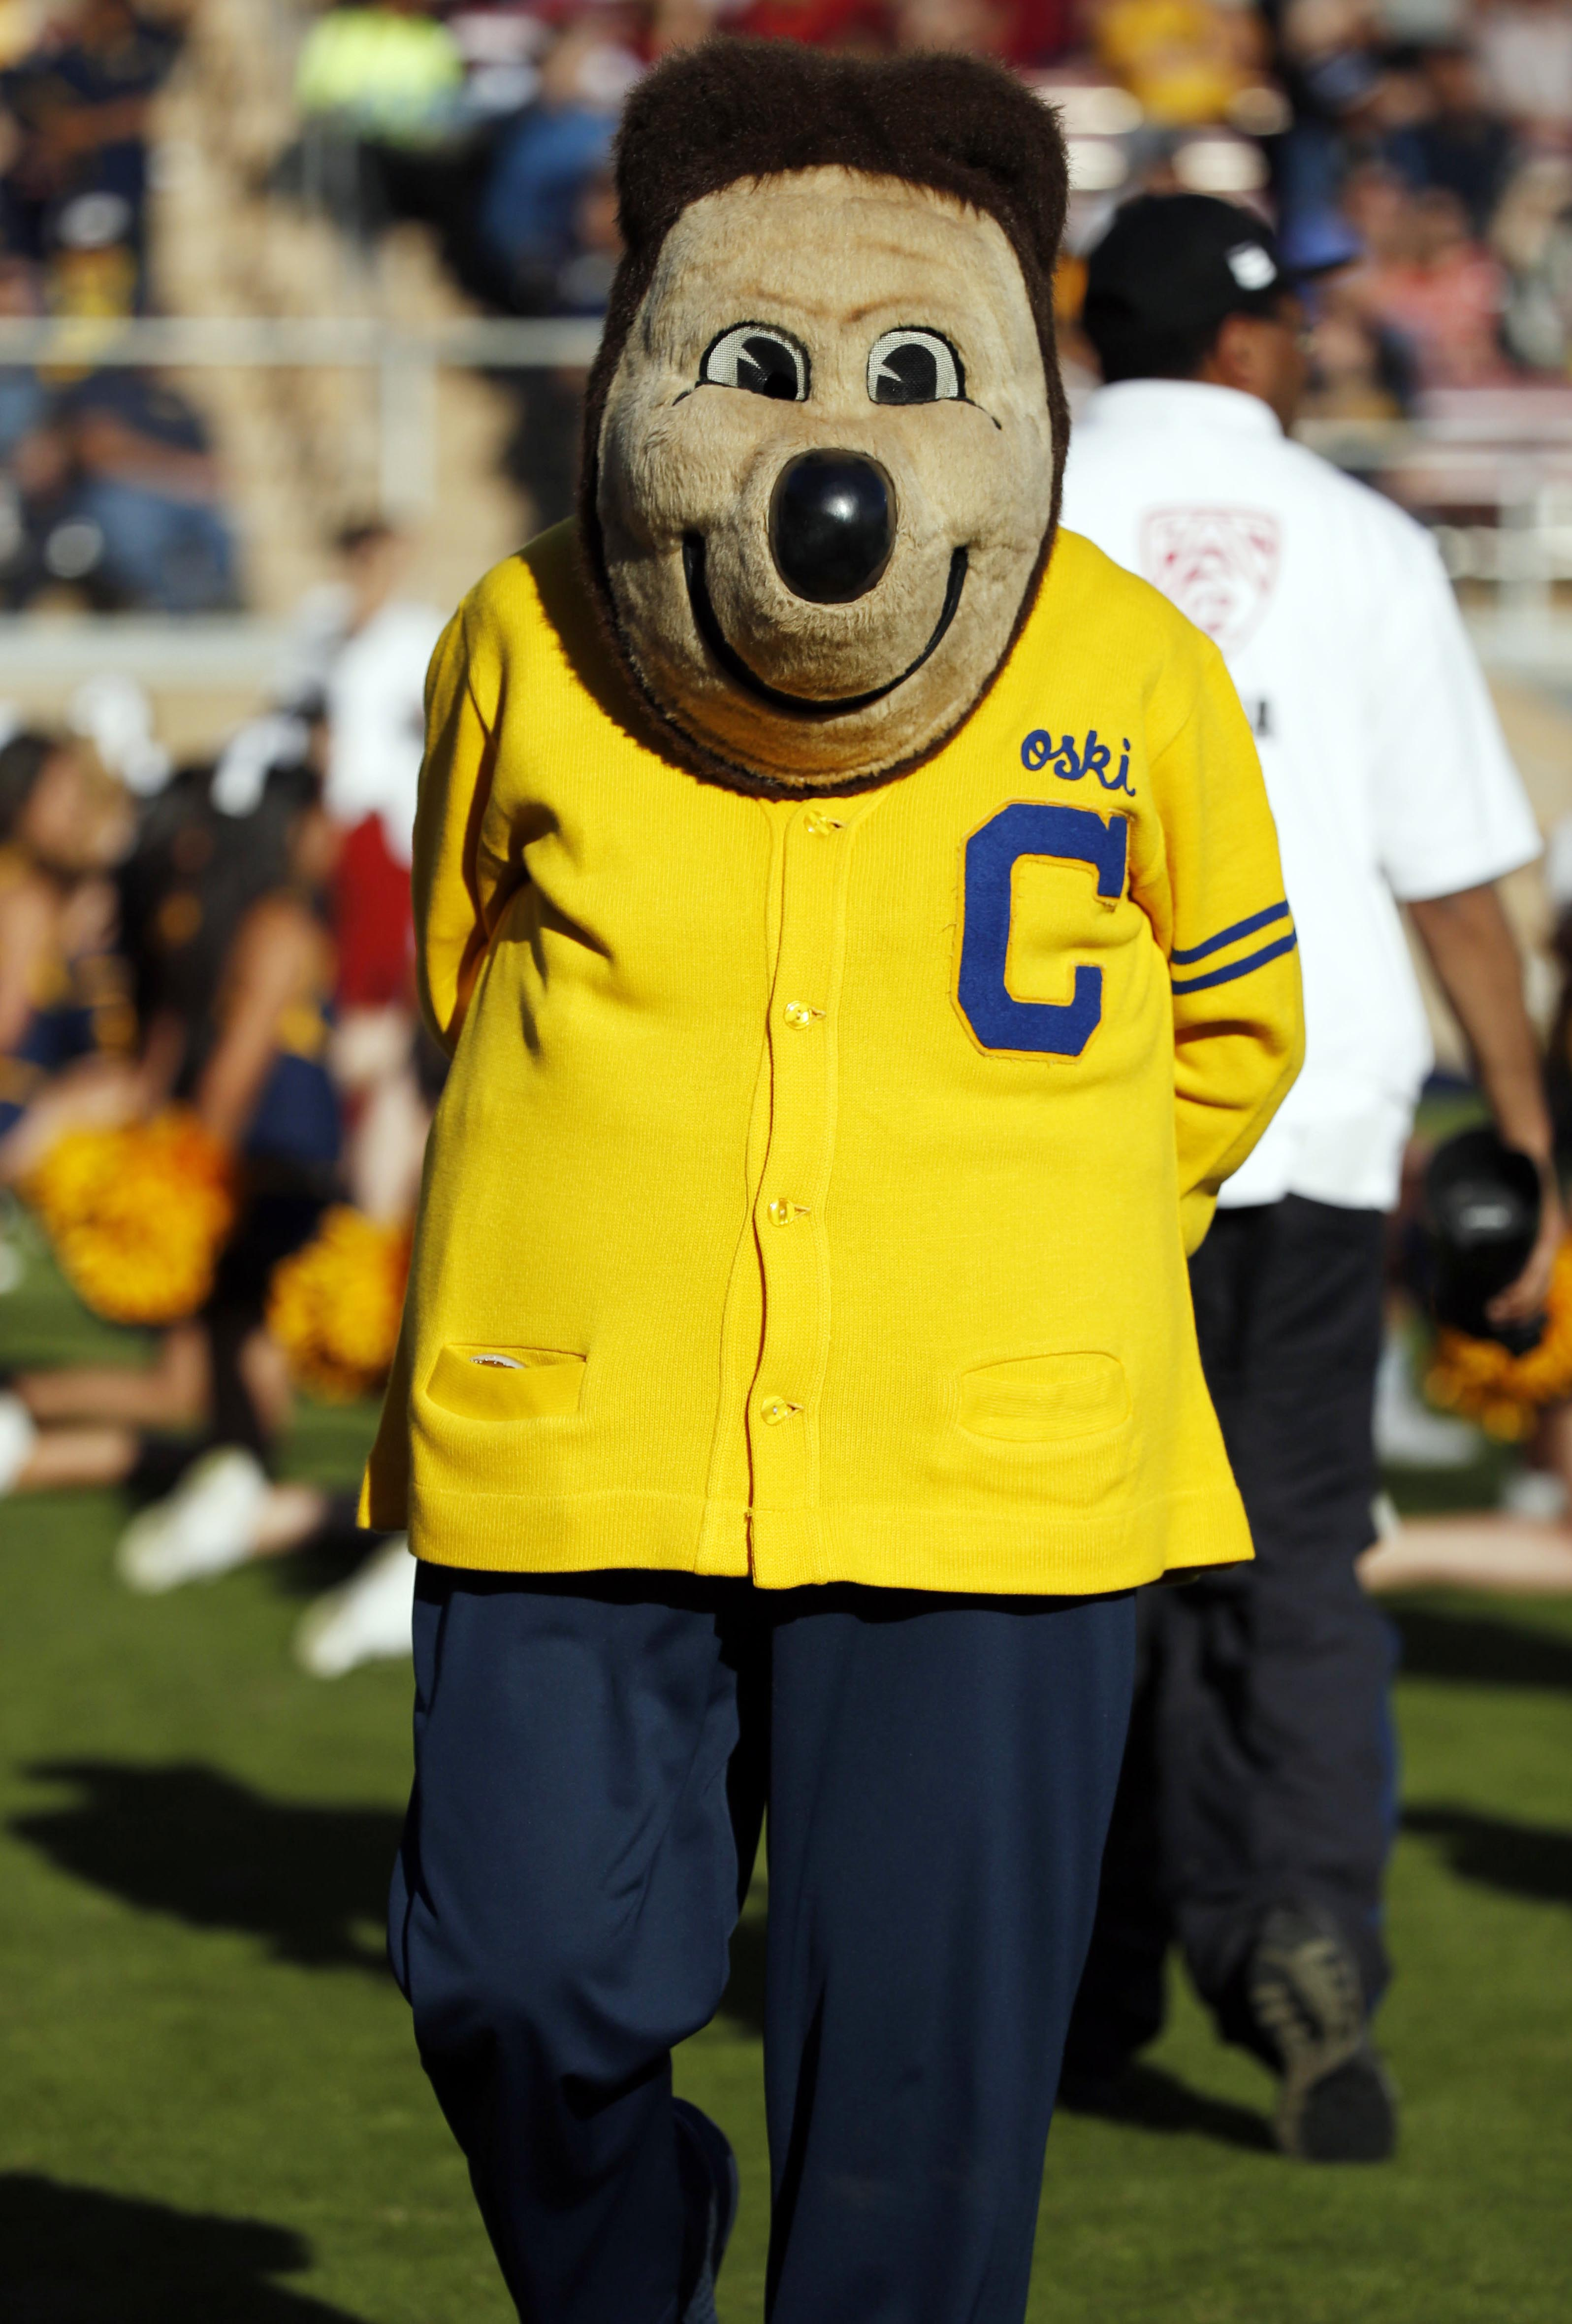 Oski made it last year. Who makes the CGB Hall of Fame this year?